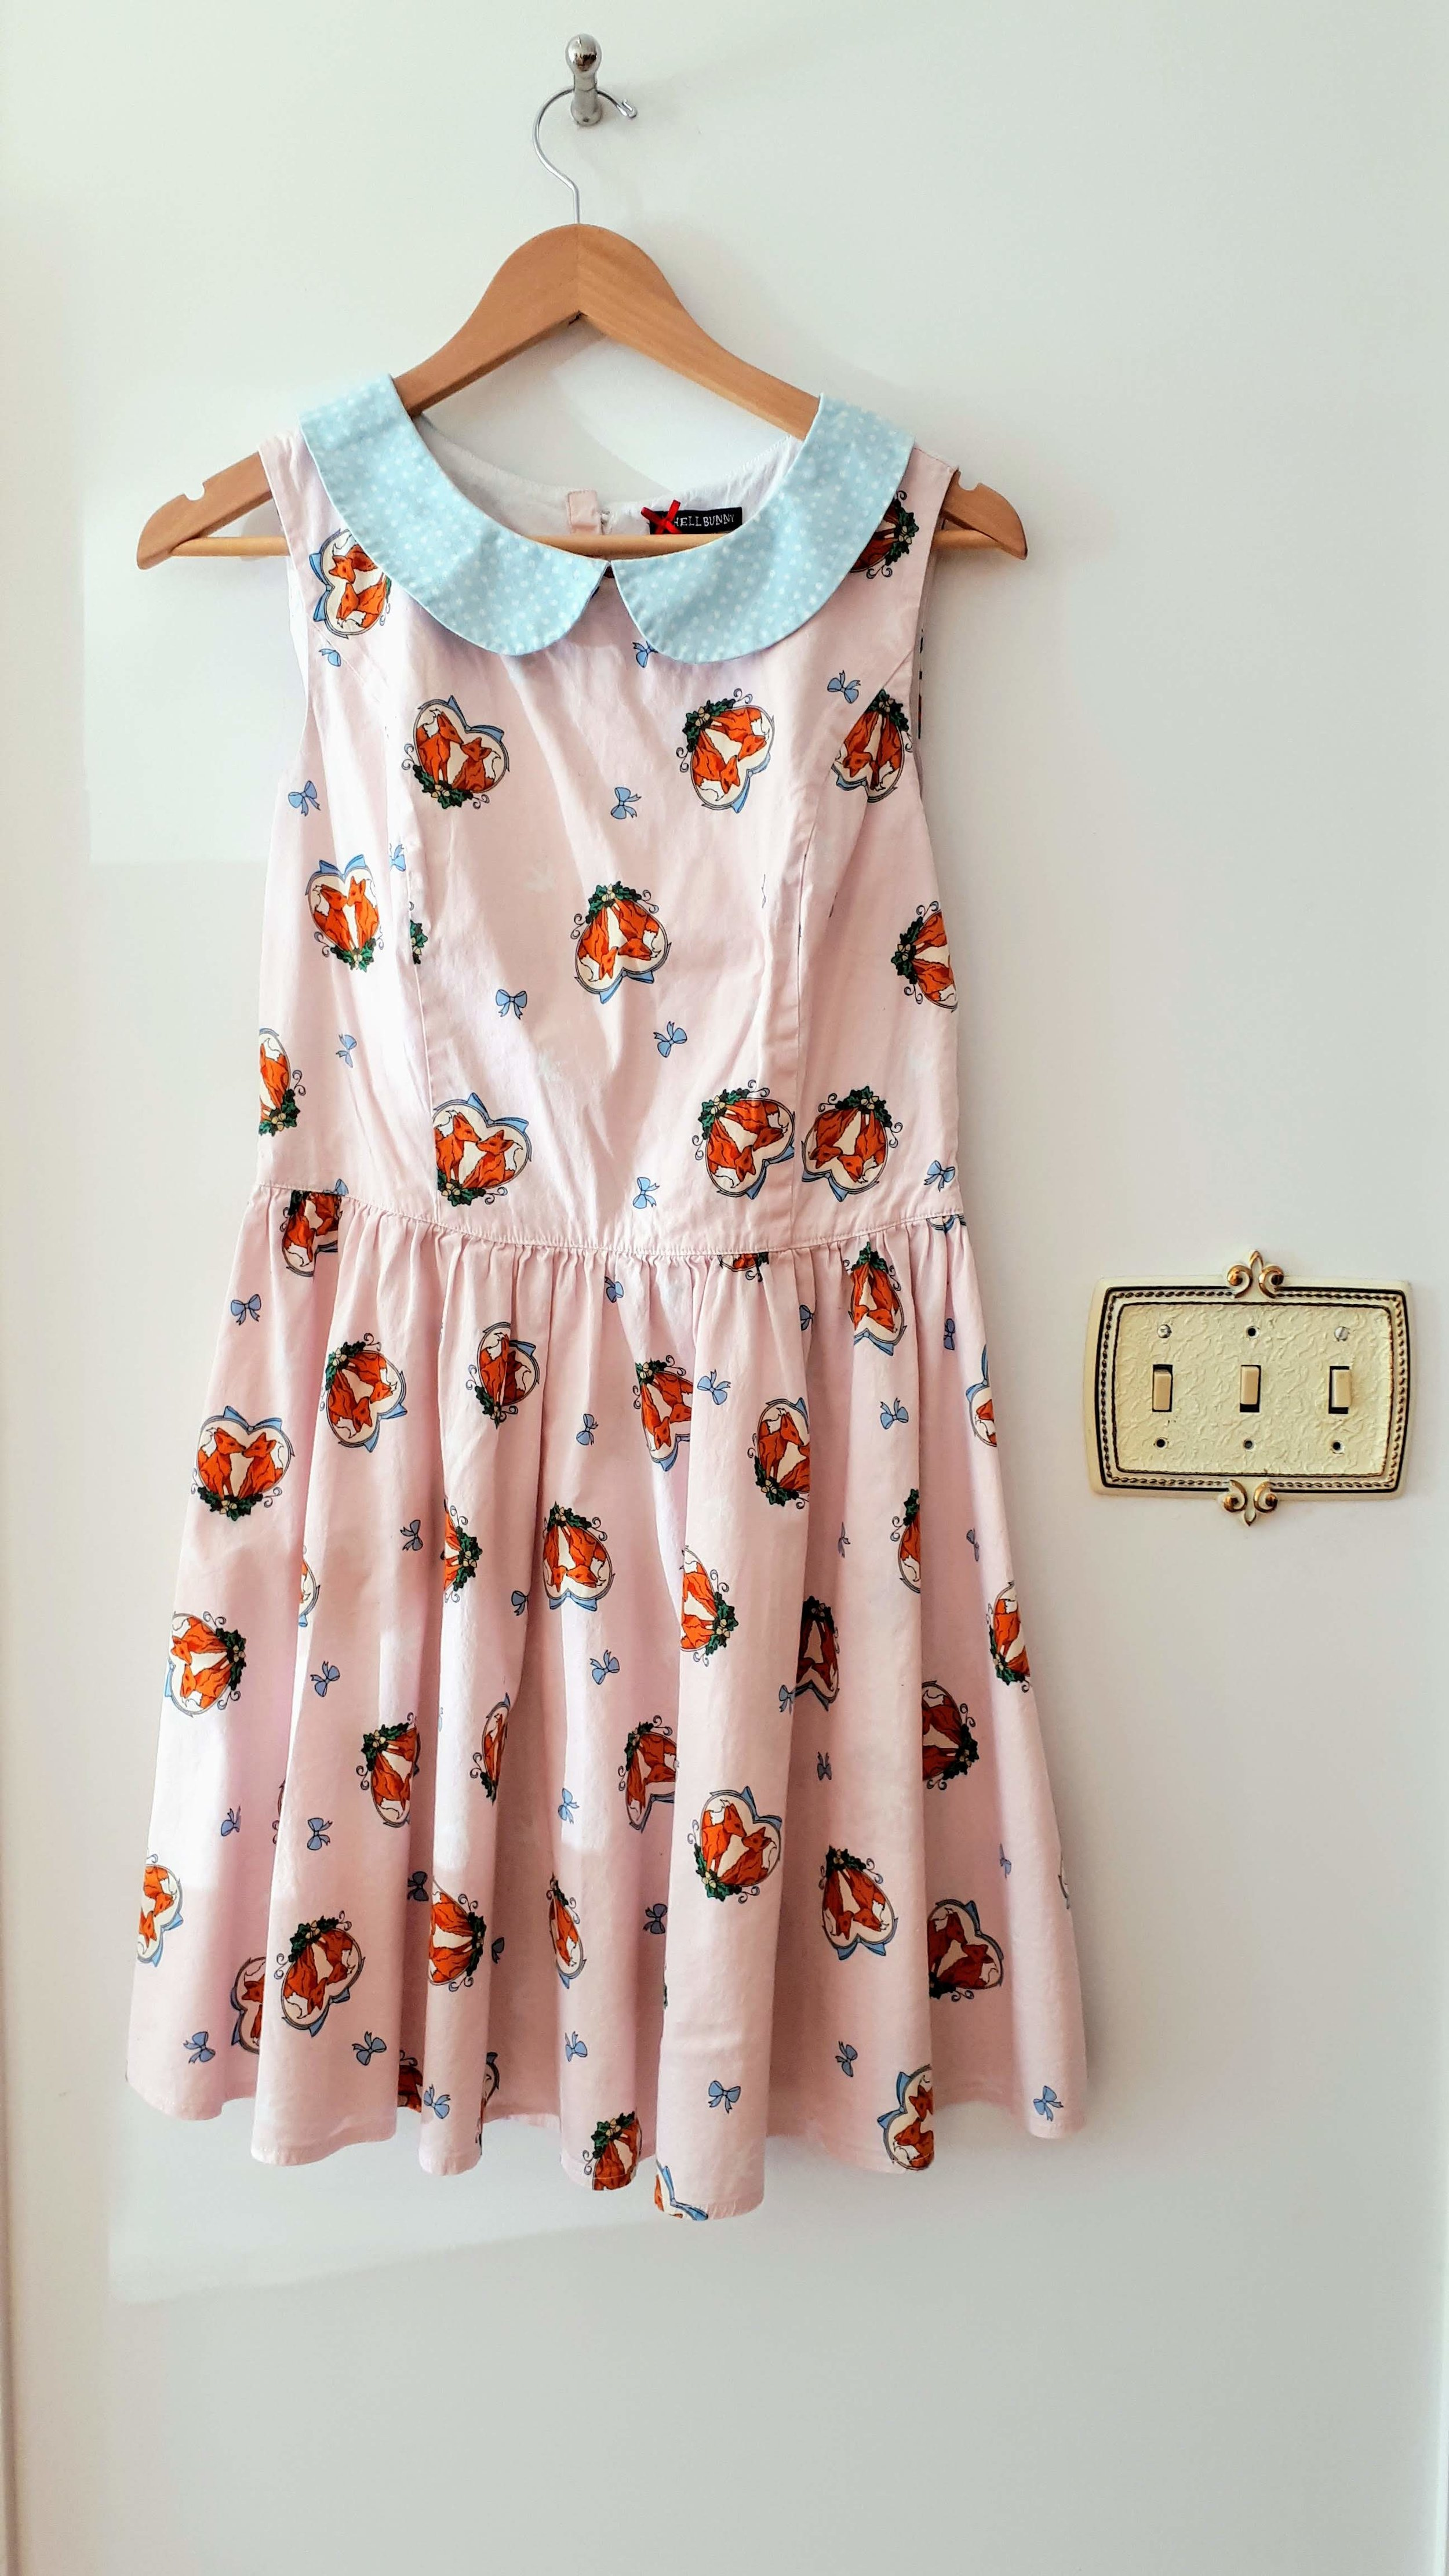 Hell Bunny dress; Size L, $36